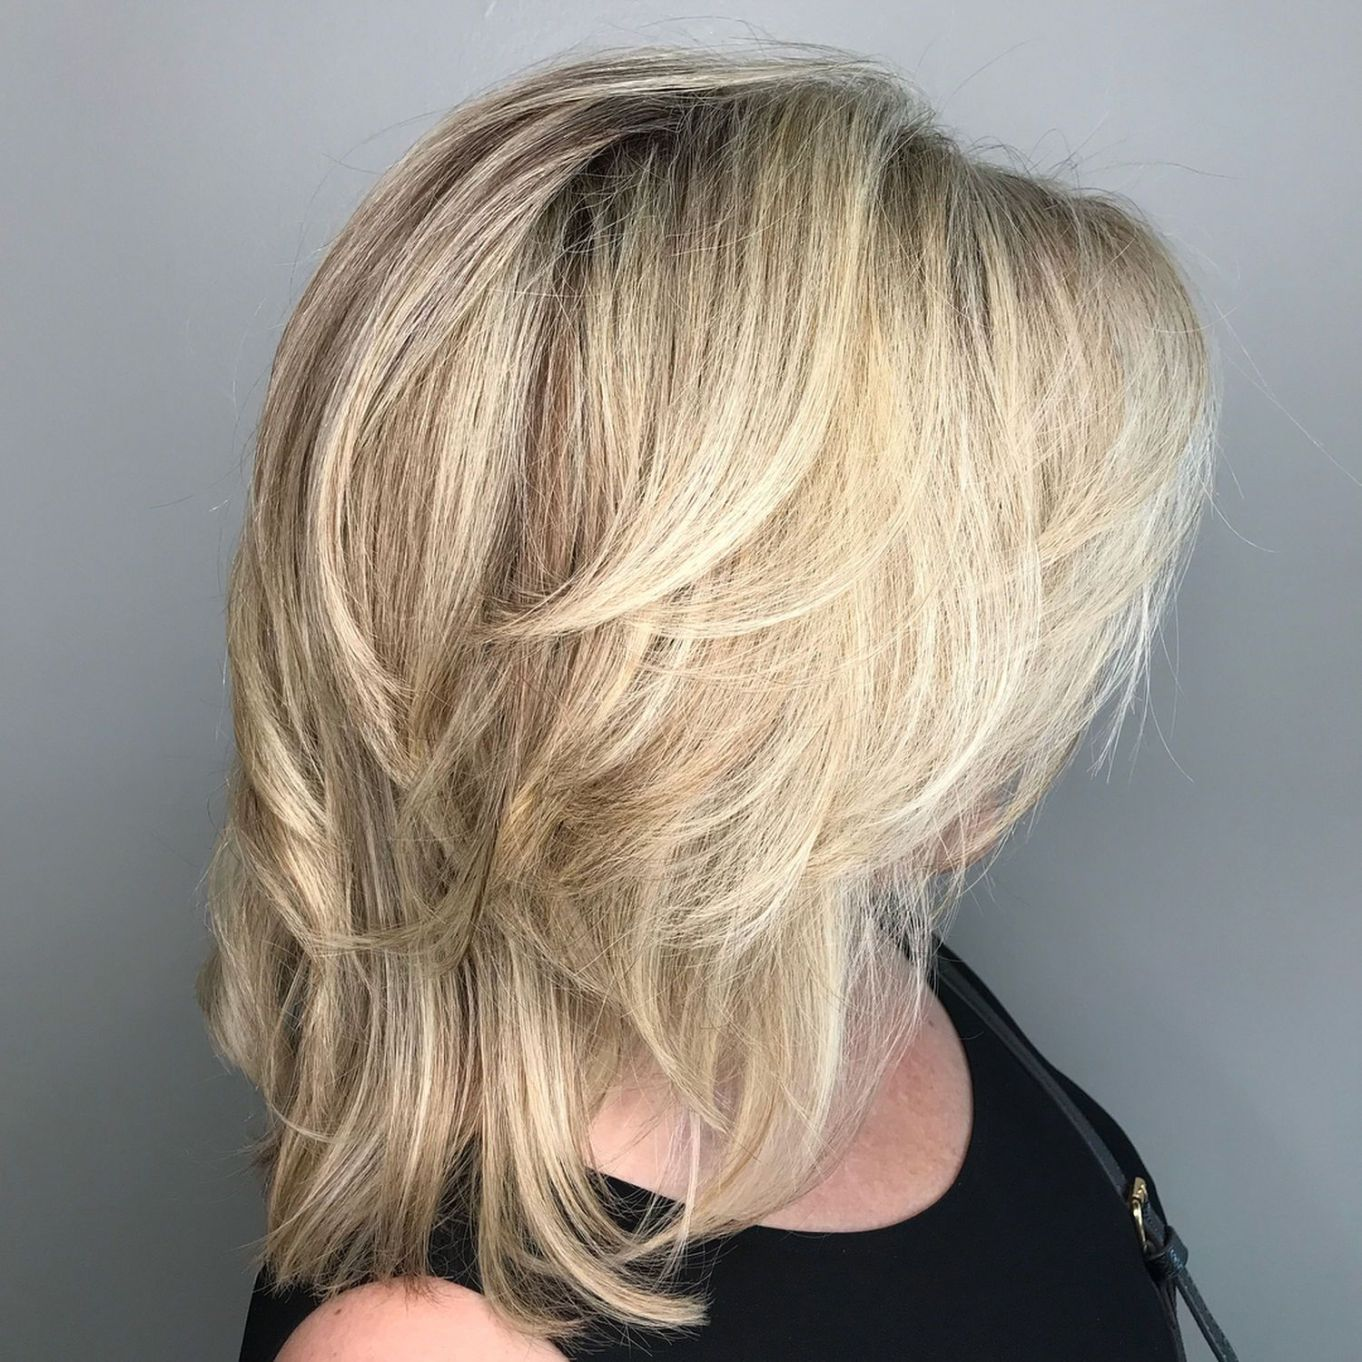 Pin On Blond Girl